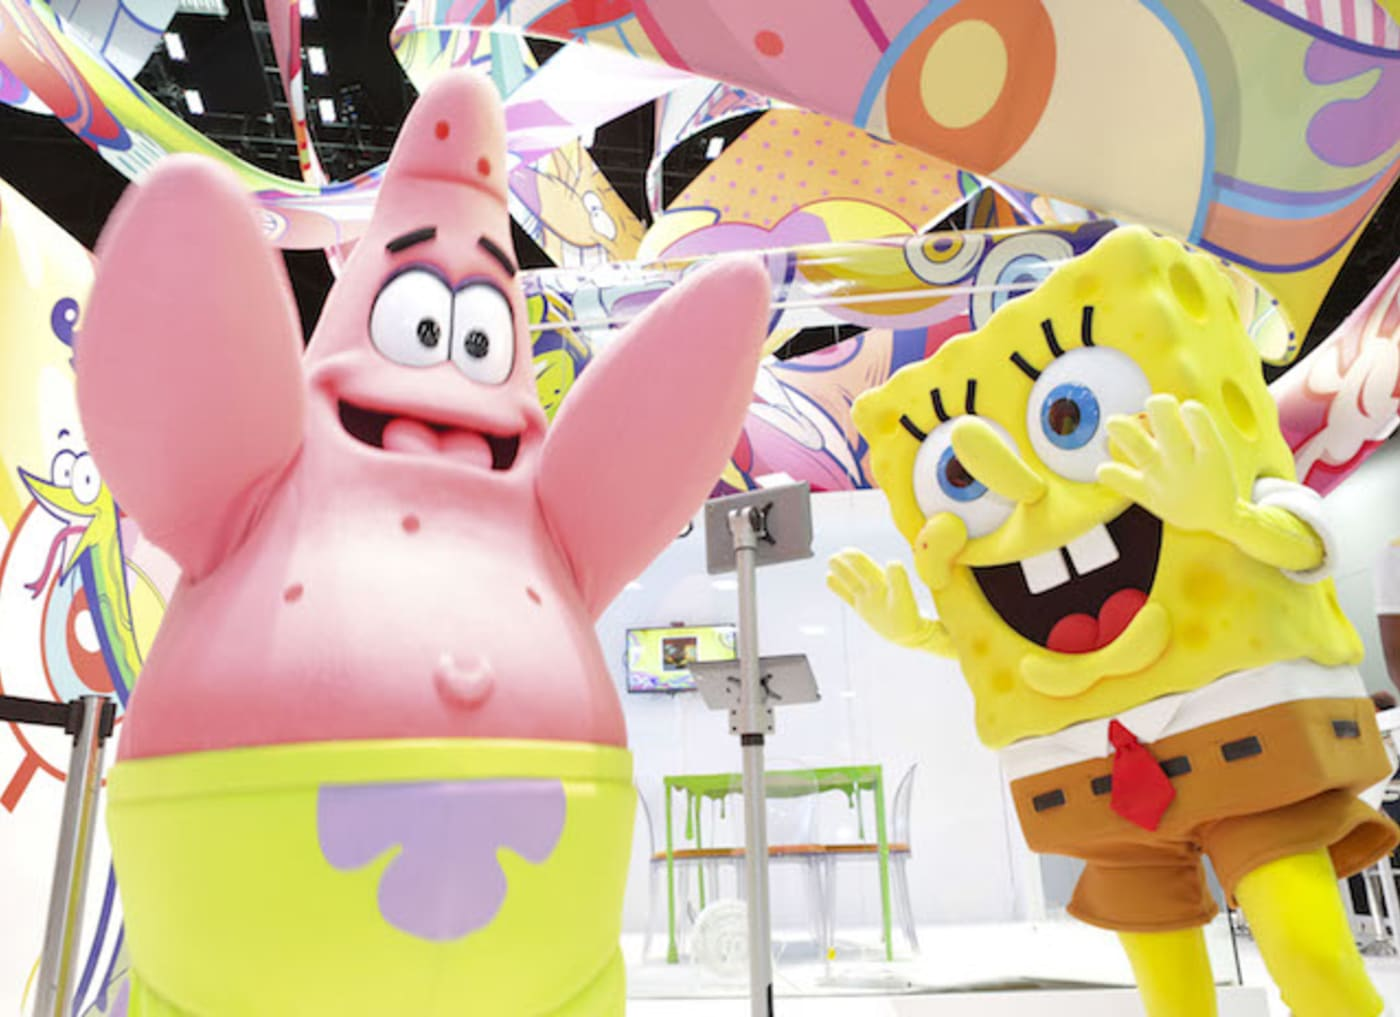 This is a picture of Patrick and Spongebob.